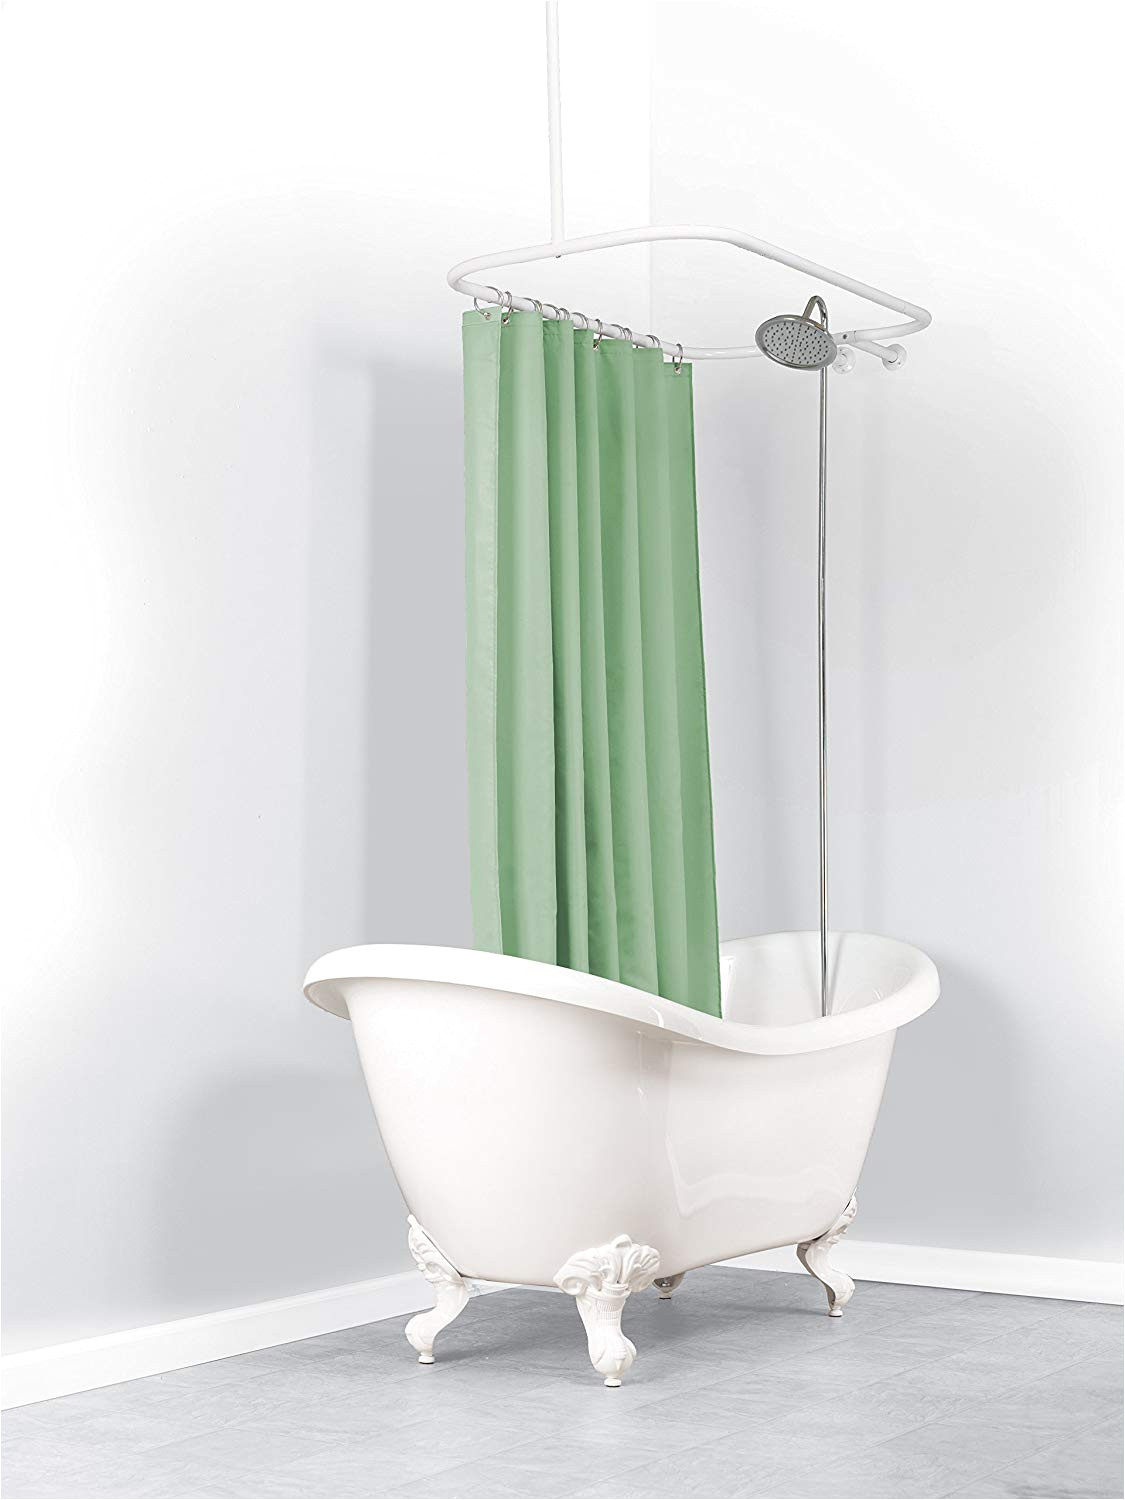 zpc zenith products corporation zenna home 34941ww neverrust aluminum hoop shower curtain rod for claw foot tubs white amazon co uk kitchen home